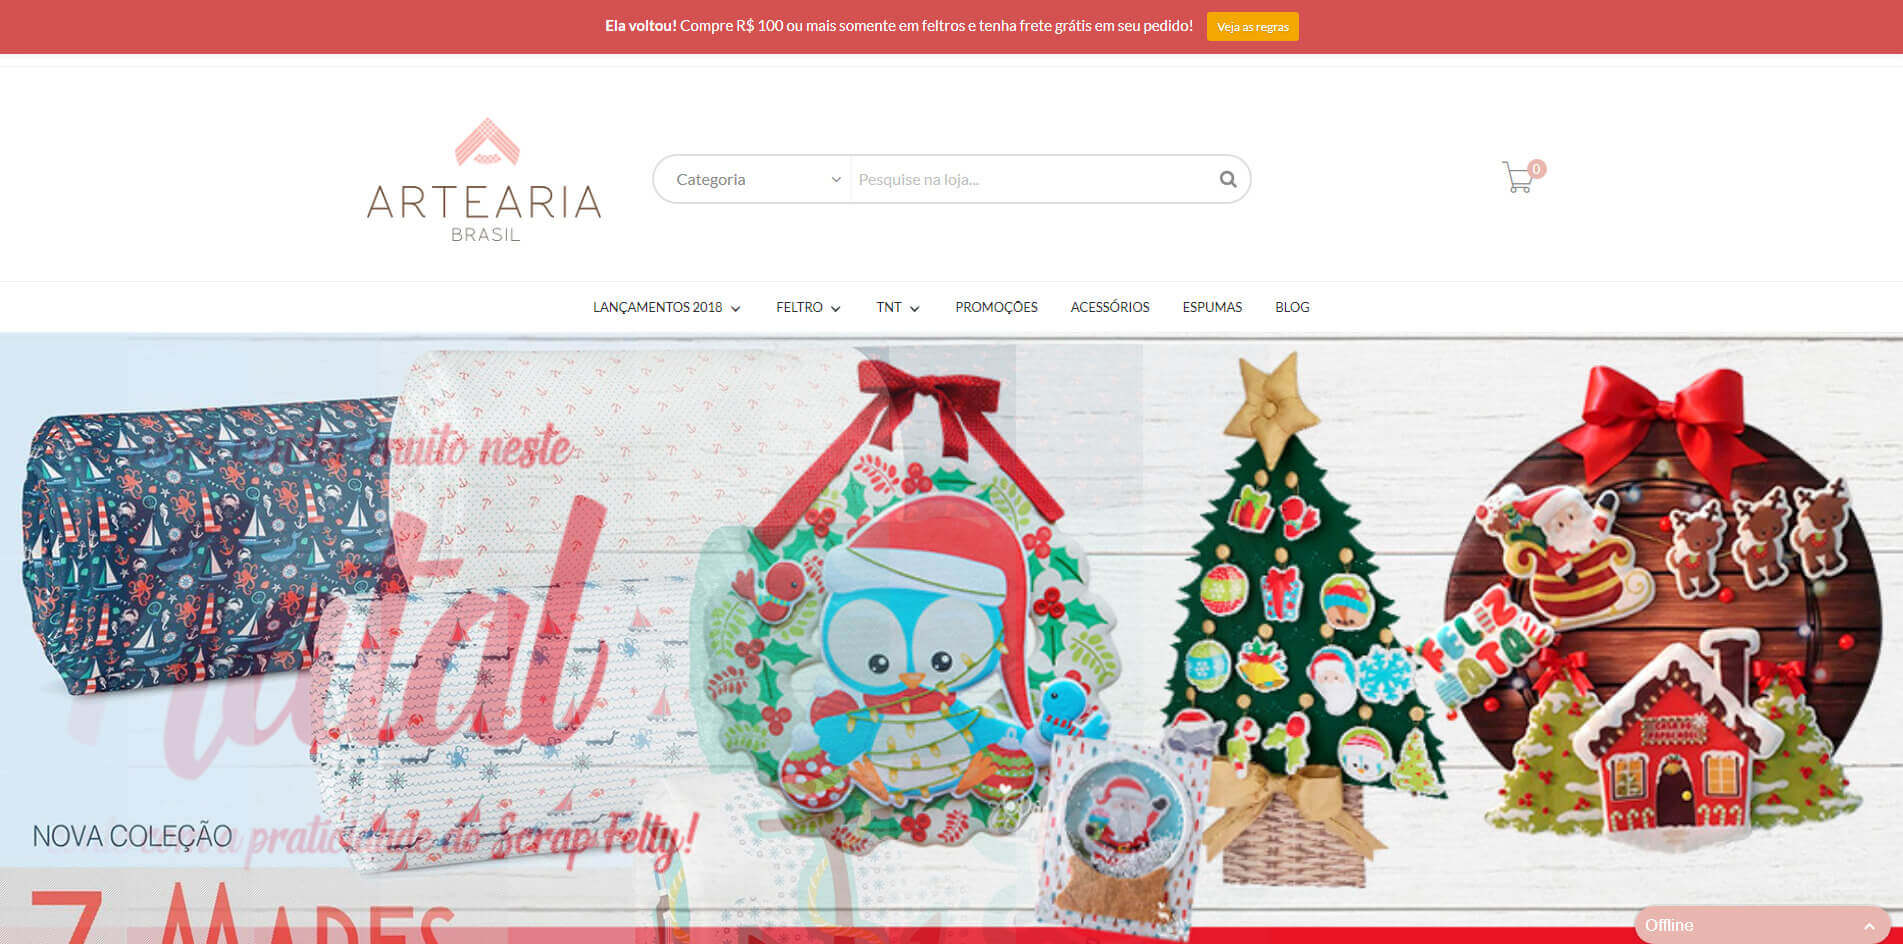 Read more about the article Artearia Brasil